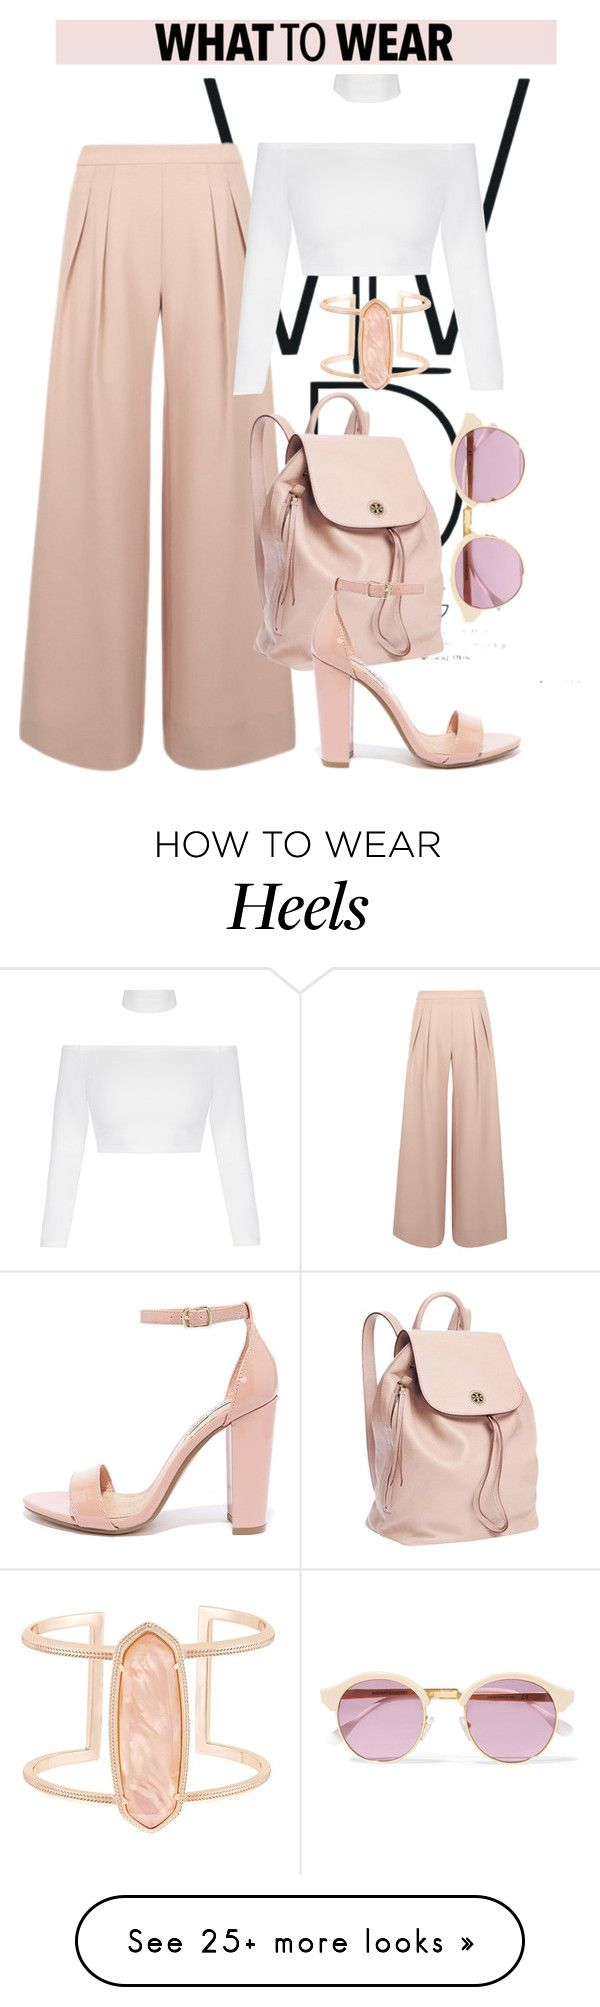 """""""OOTD"""" by gigi-lucid on Polyvore featuring Kendra Scott, Antipodium, Tory Burch, Sheriff&Cherry, Steve Madden, Spring, outfit and polyvoreeditorial"""